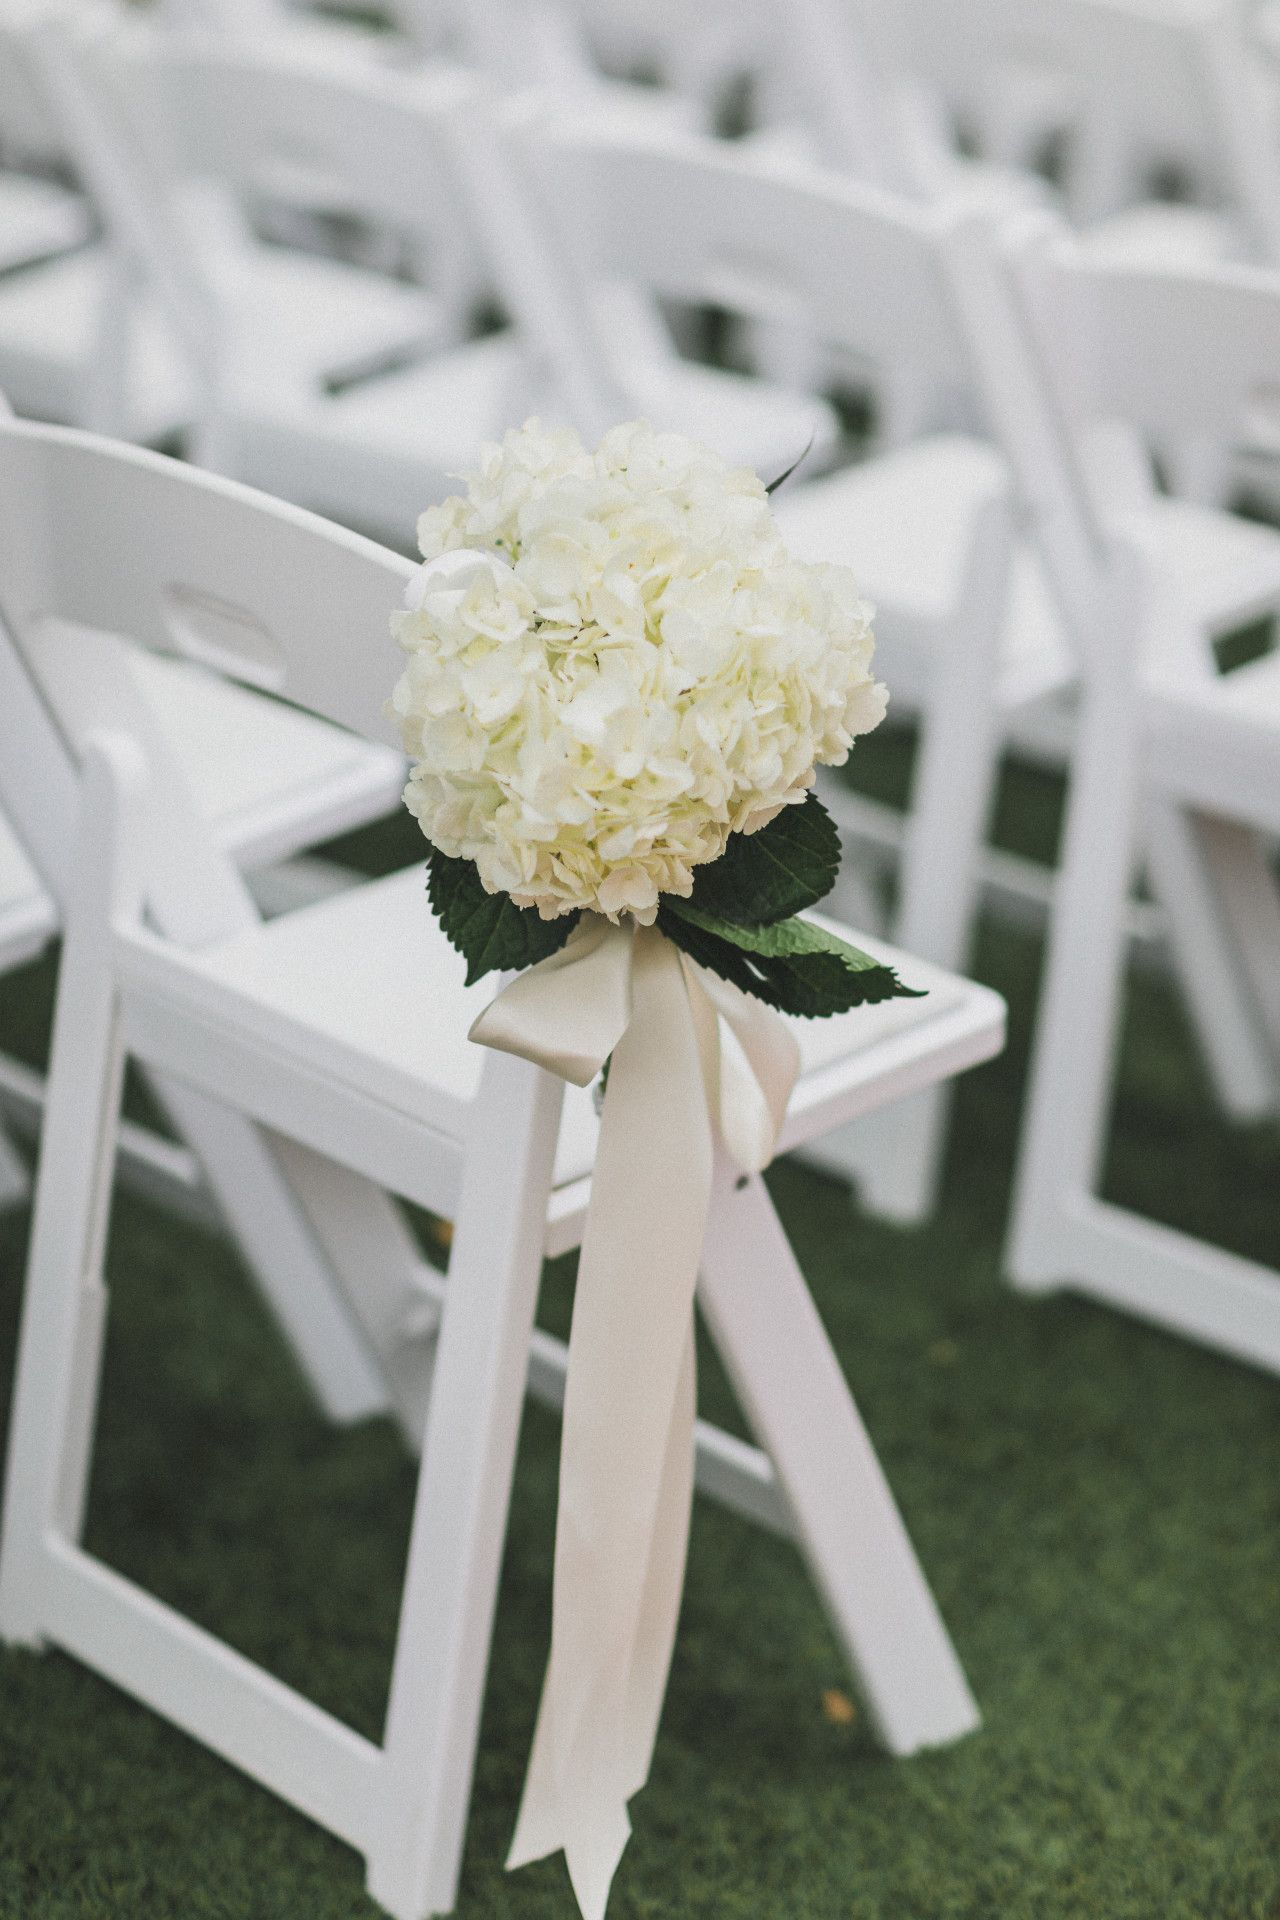 Wedding decorations white  white floral aisle marker  white wedding ceremony aisle marker